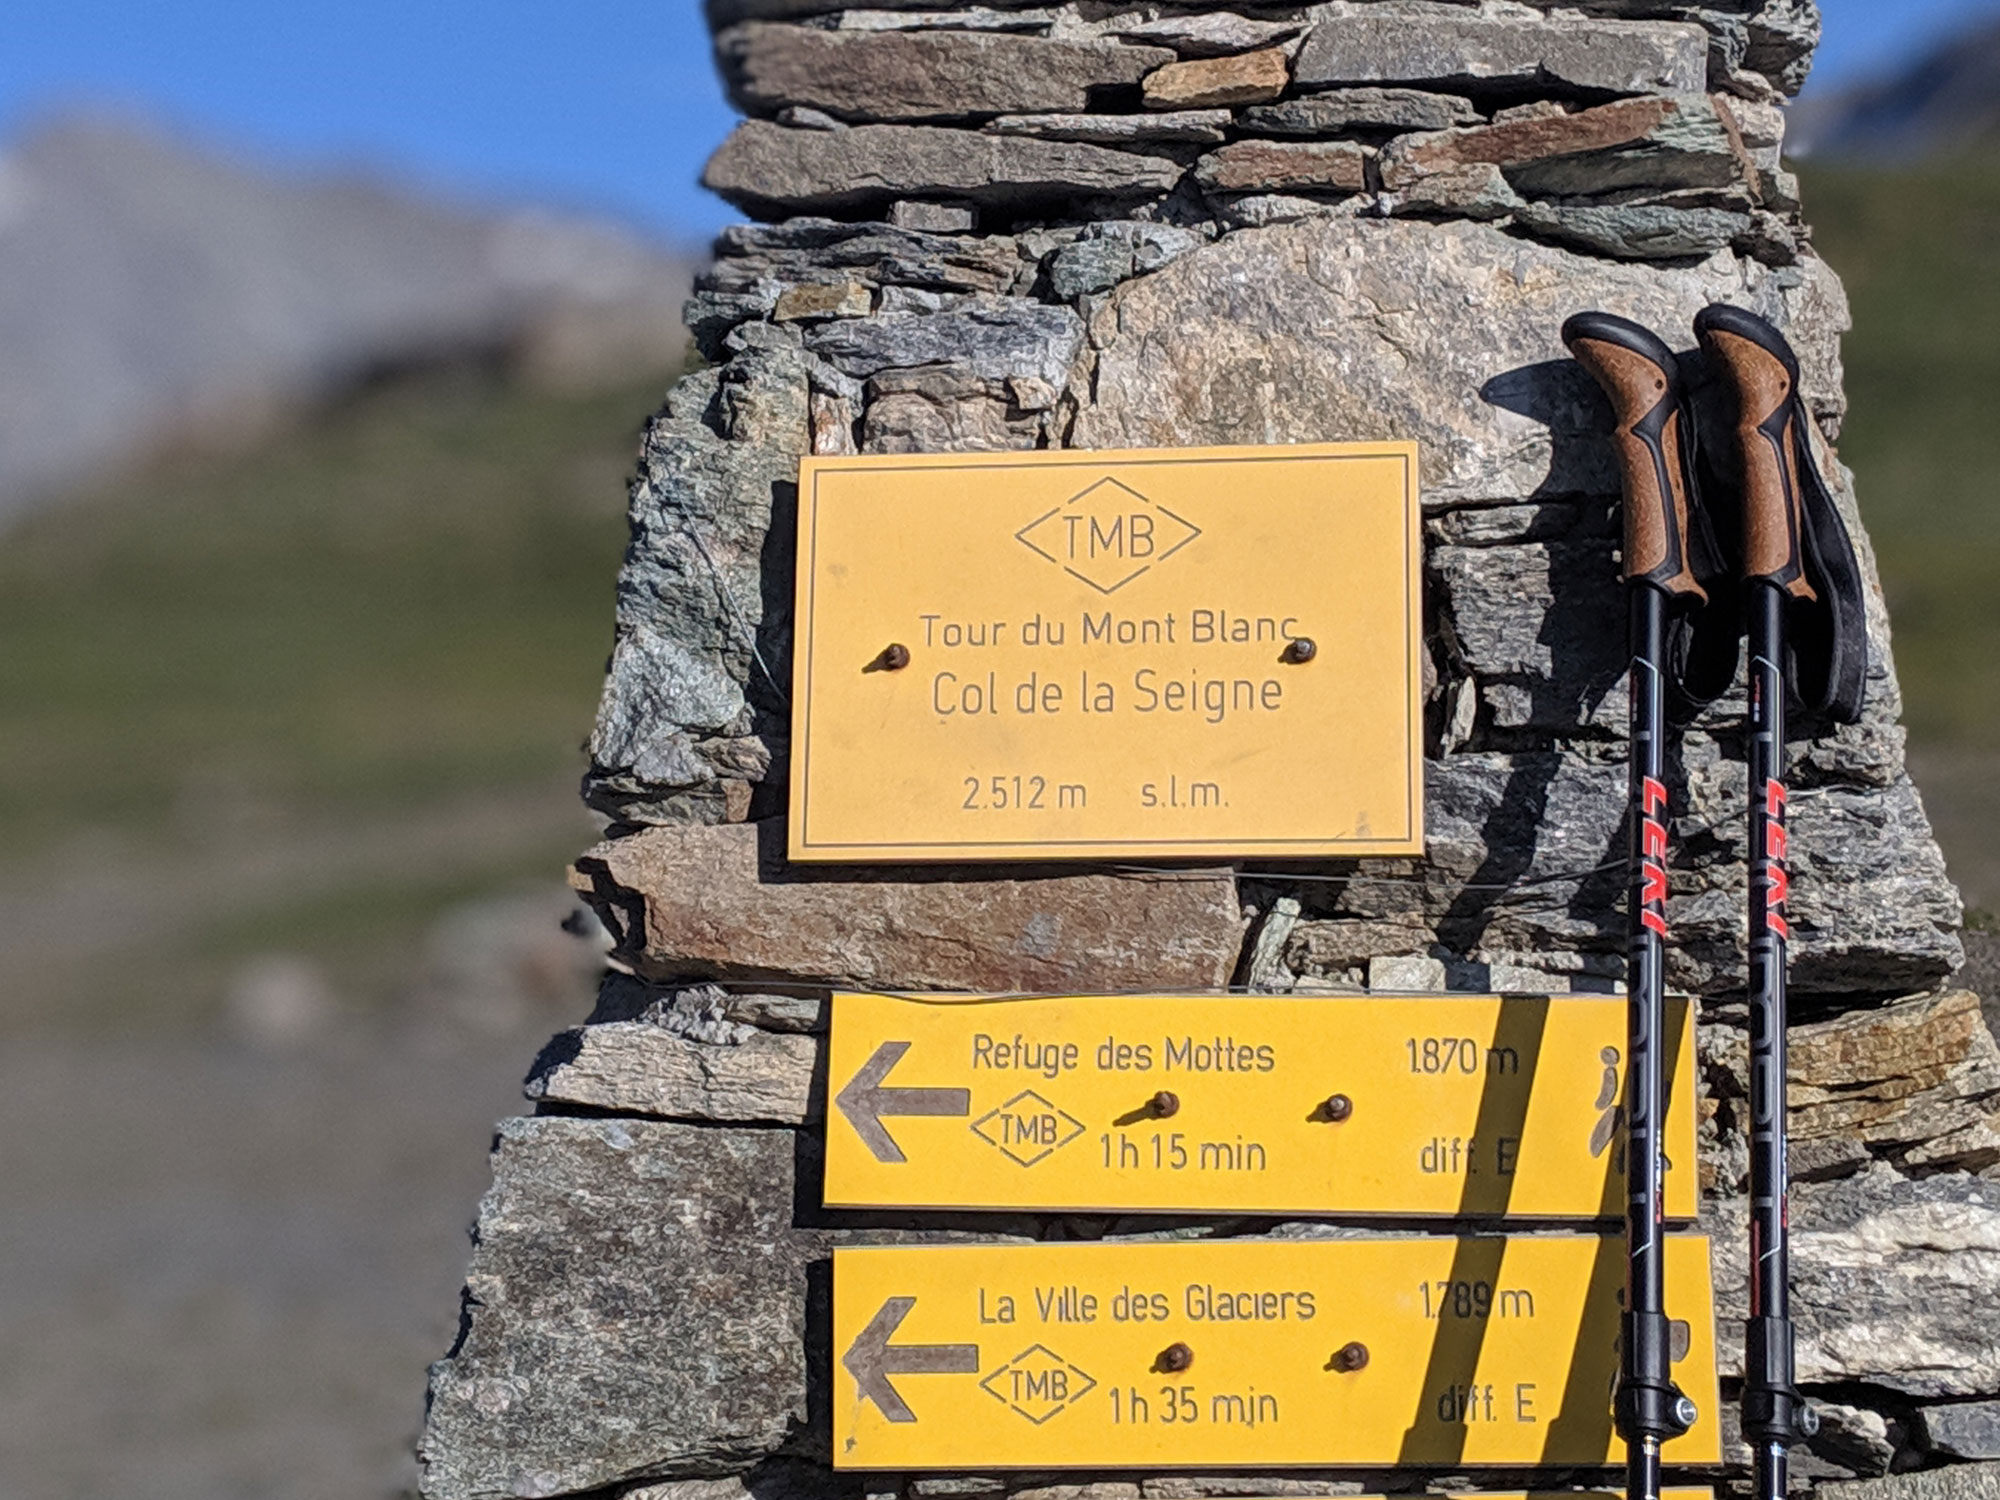 Trekking Poles at the Summit